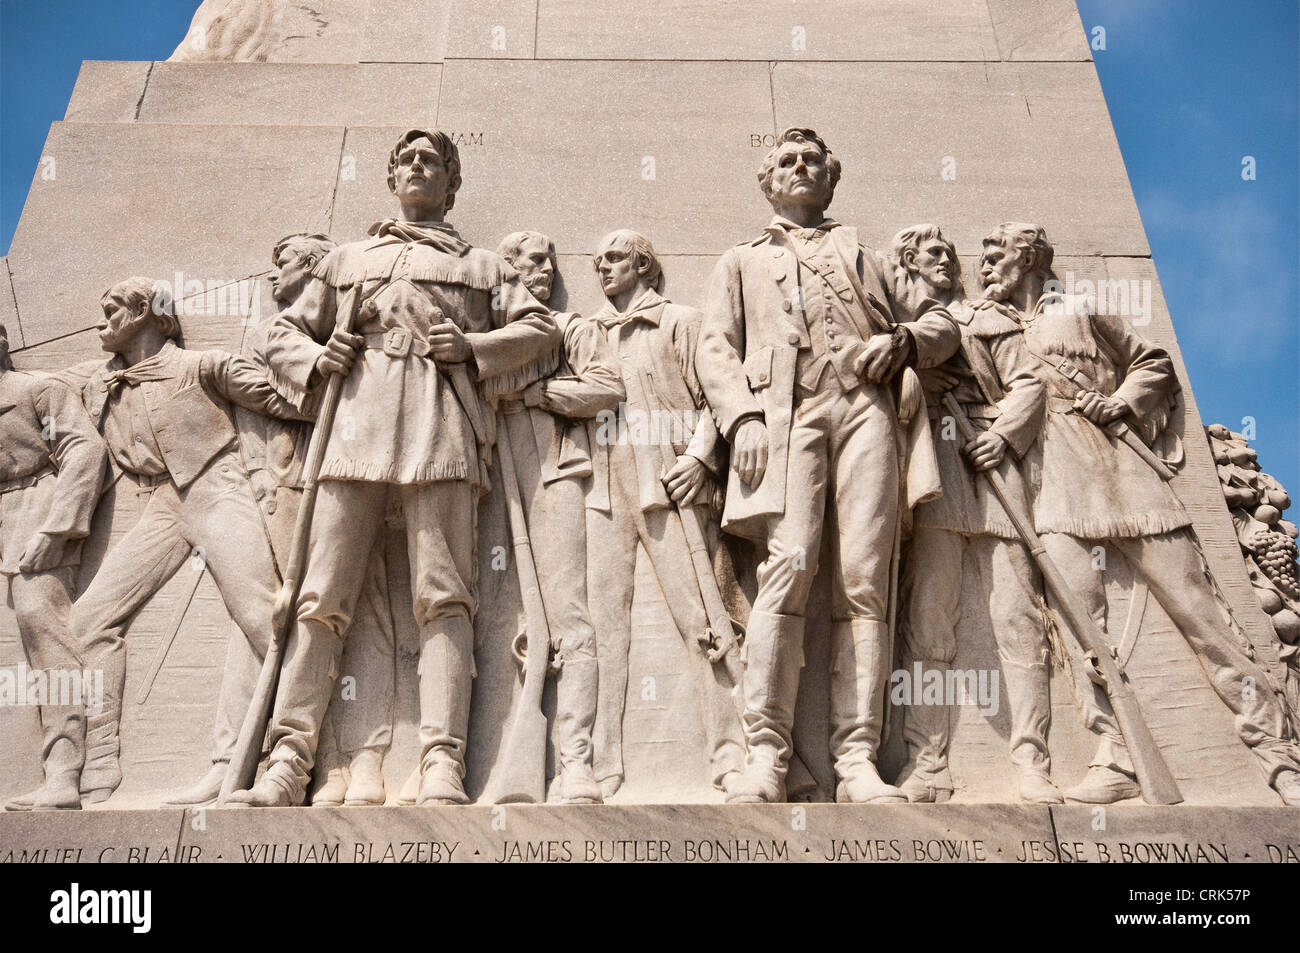 James Butler Bonham and James Bowie statues at Cenotaph memorial to the Alamo defenders, by Pompeo Coppini, in San - Stock Image